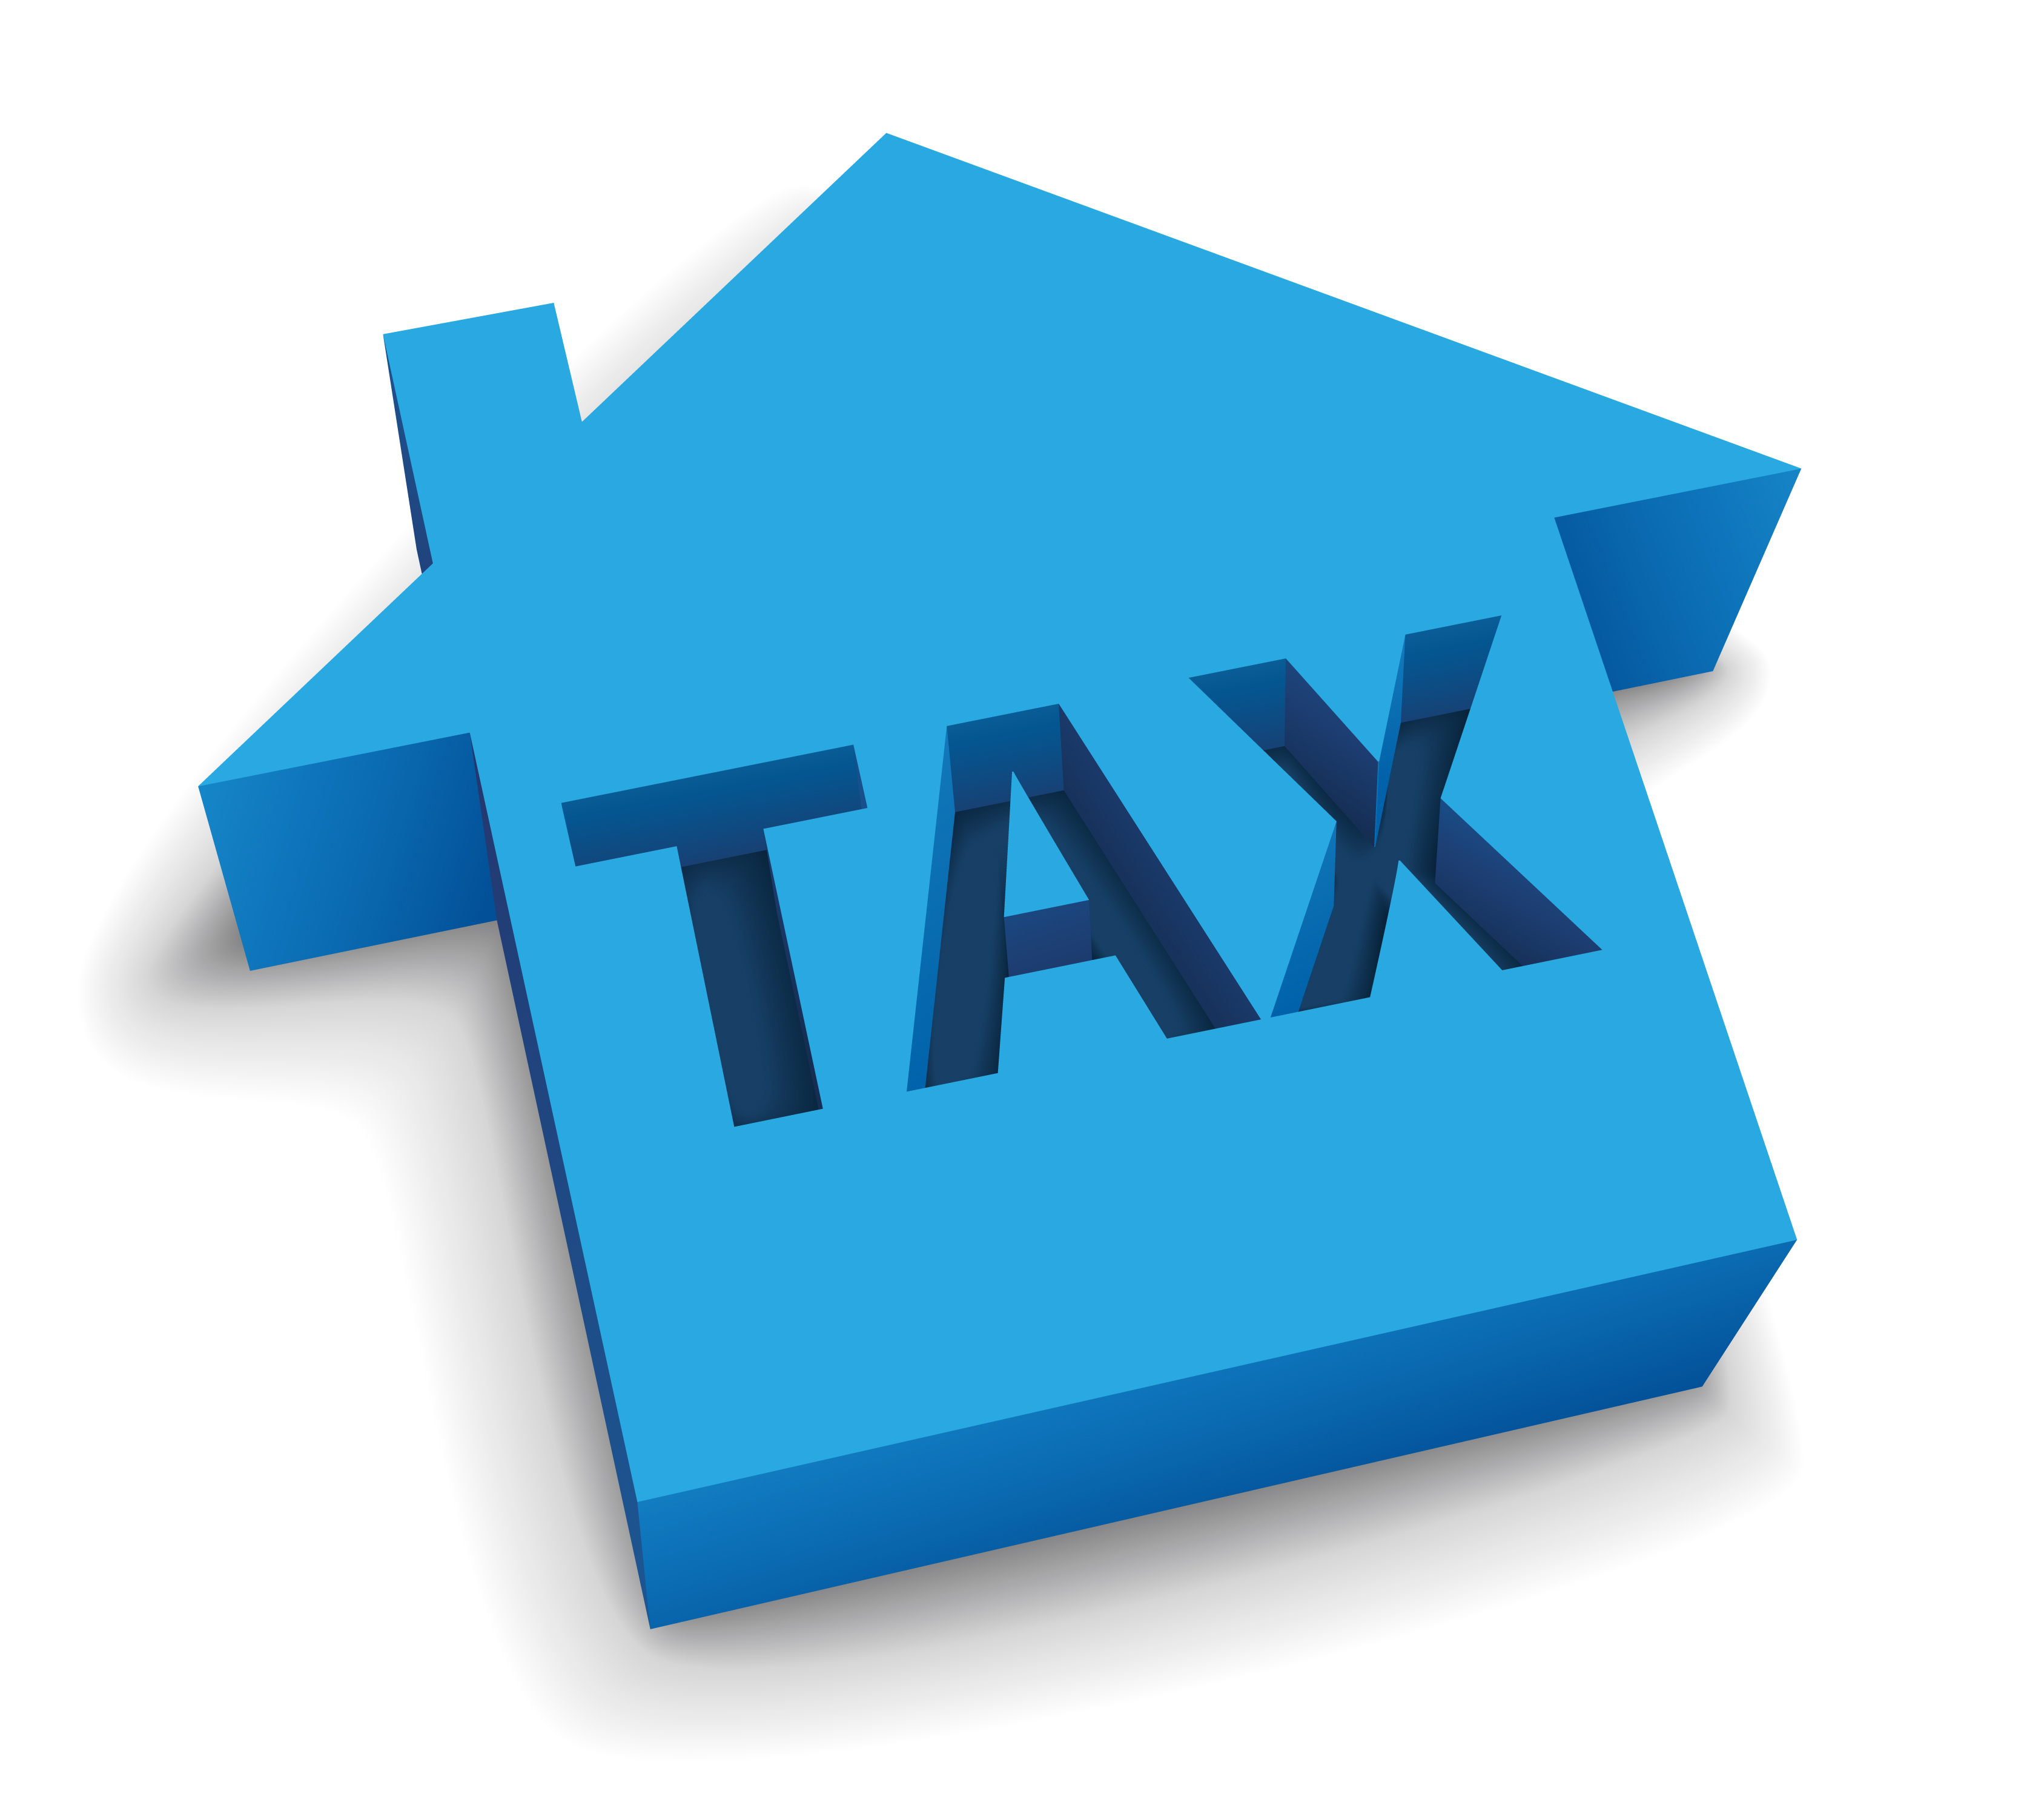 mortgage tax relief for central housing group